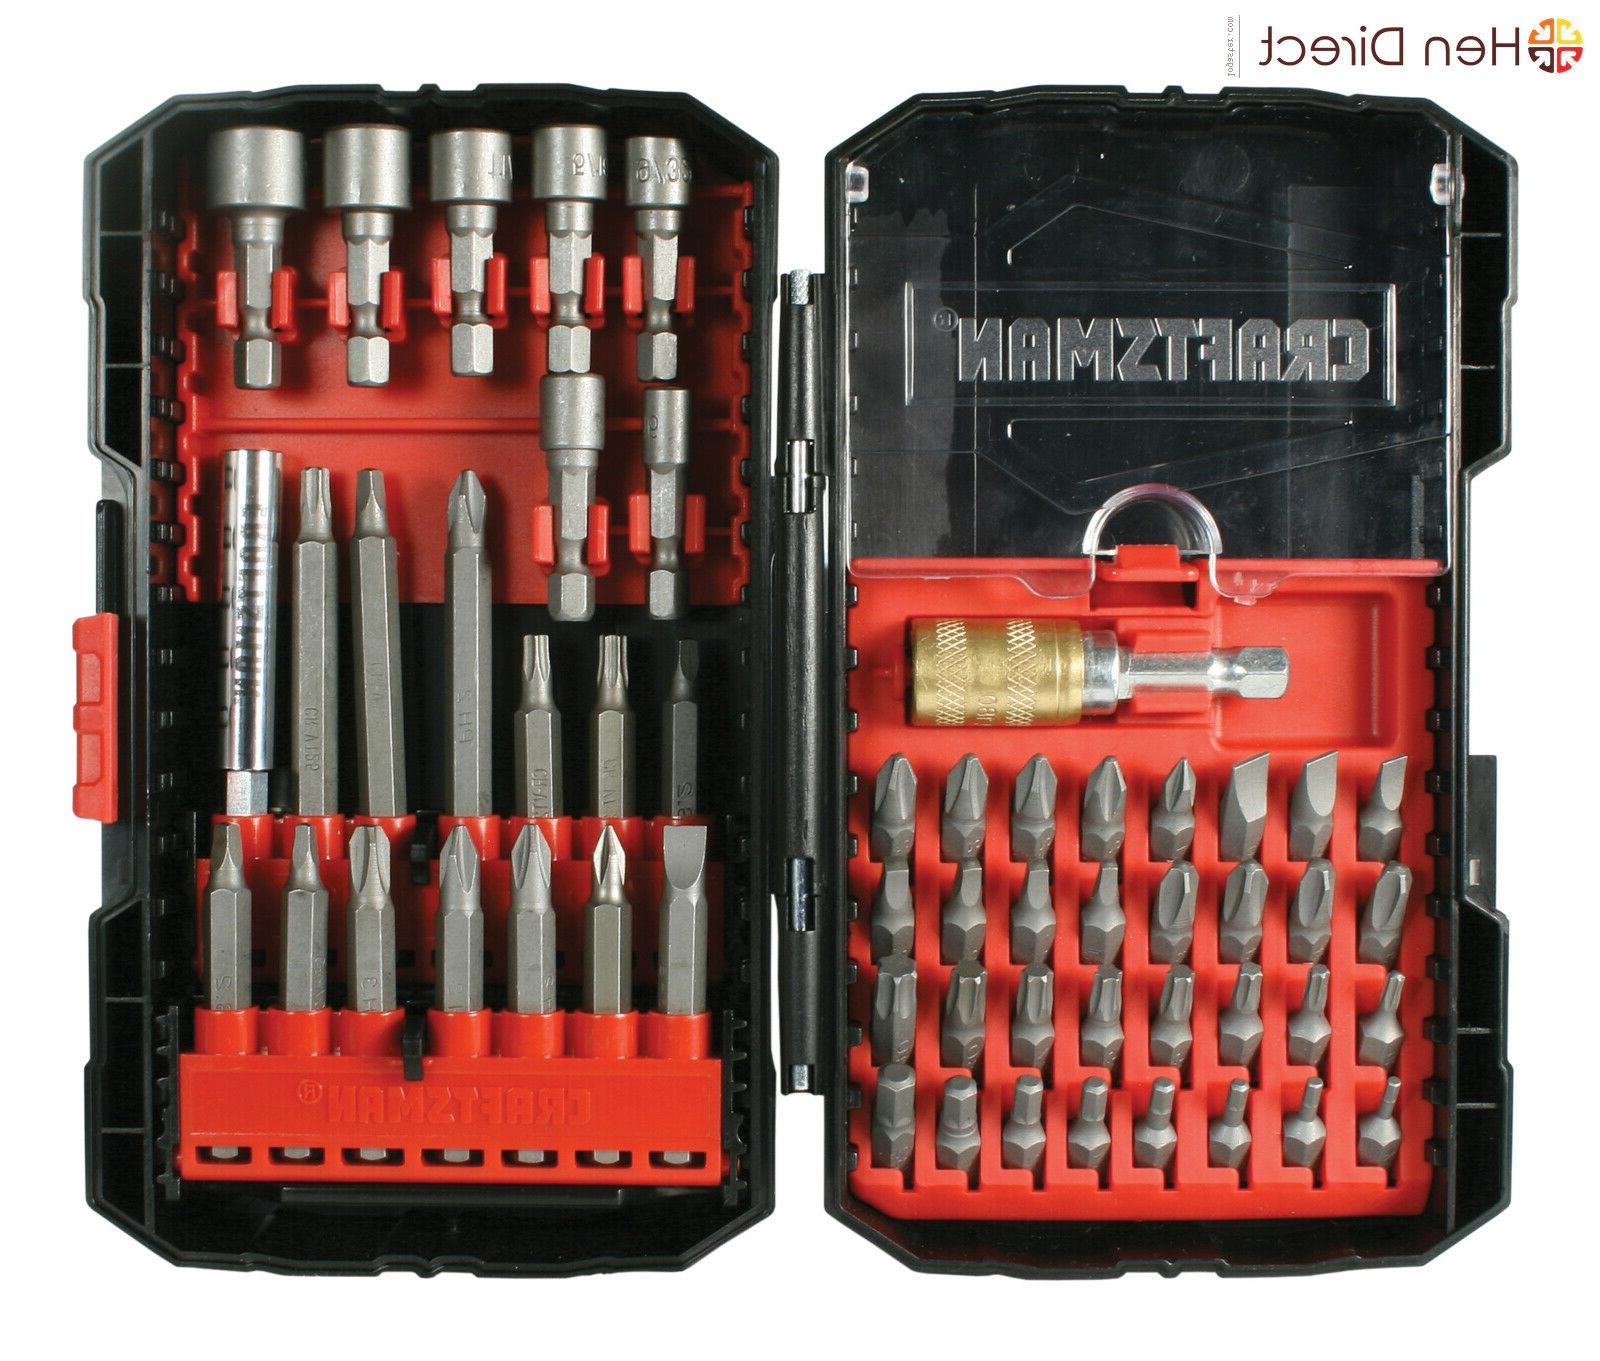 Best Craftsman Ultimate Screwdriver Bit Set 208 pcs Model 20